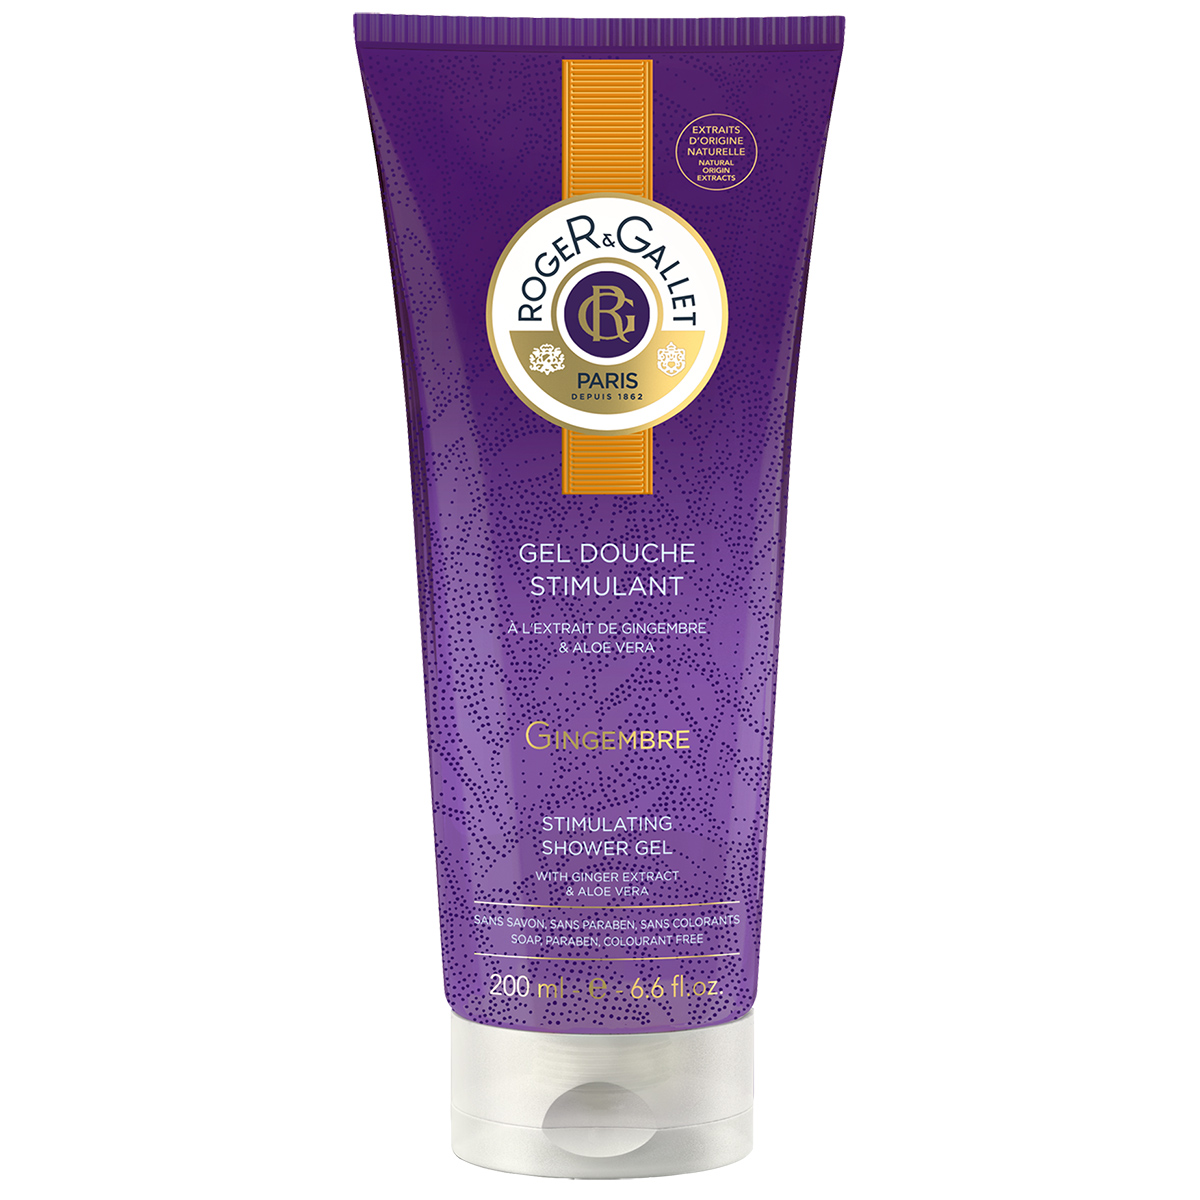 Roger&Gallet - Gingembre - Gel Douche Stimulant 200 ml